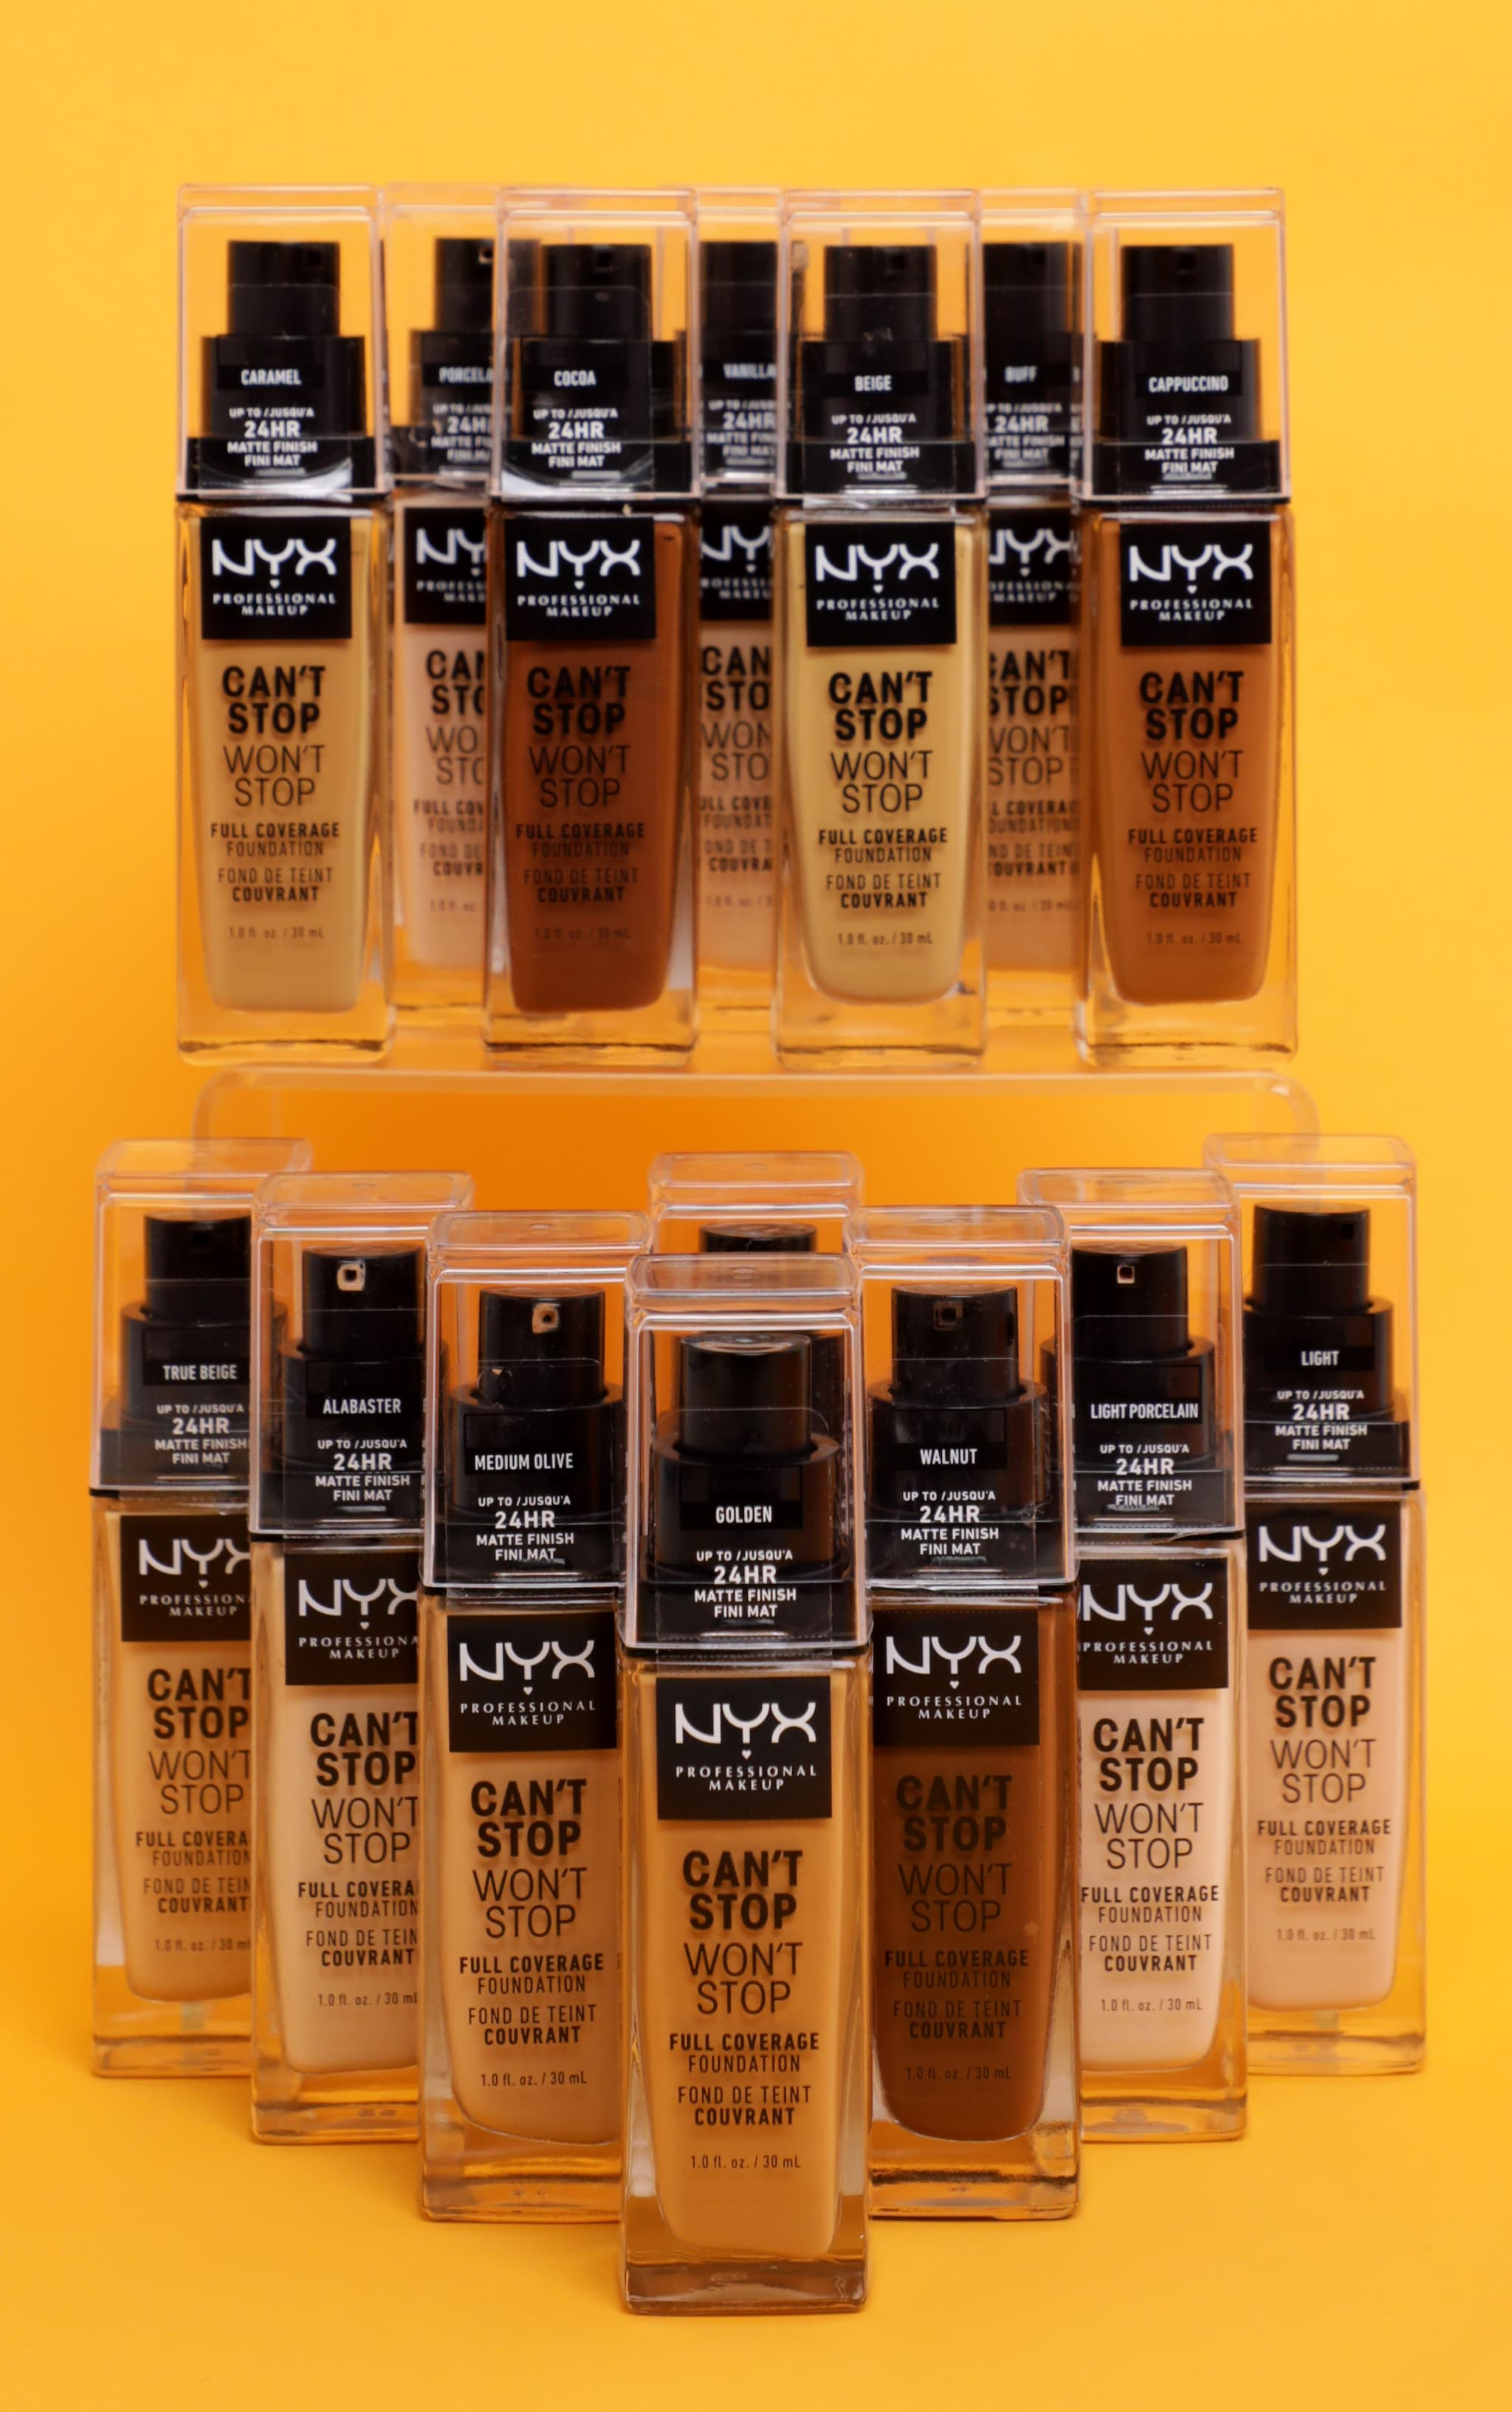 NYX PMU Makeup Can't Stop Won't Stop Full Coverage Foundation Porcelain 3